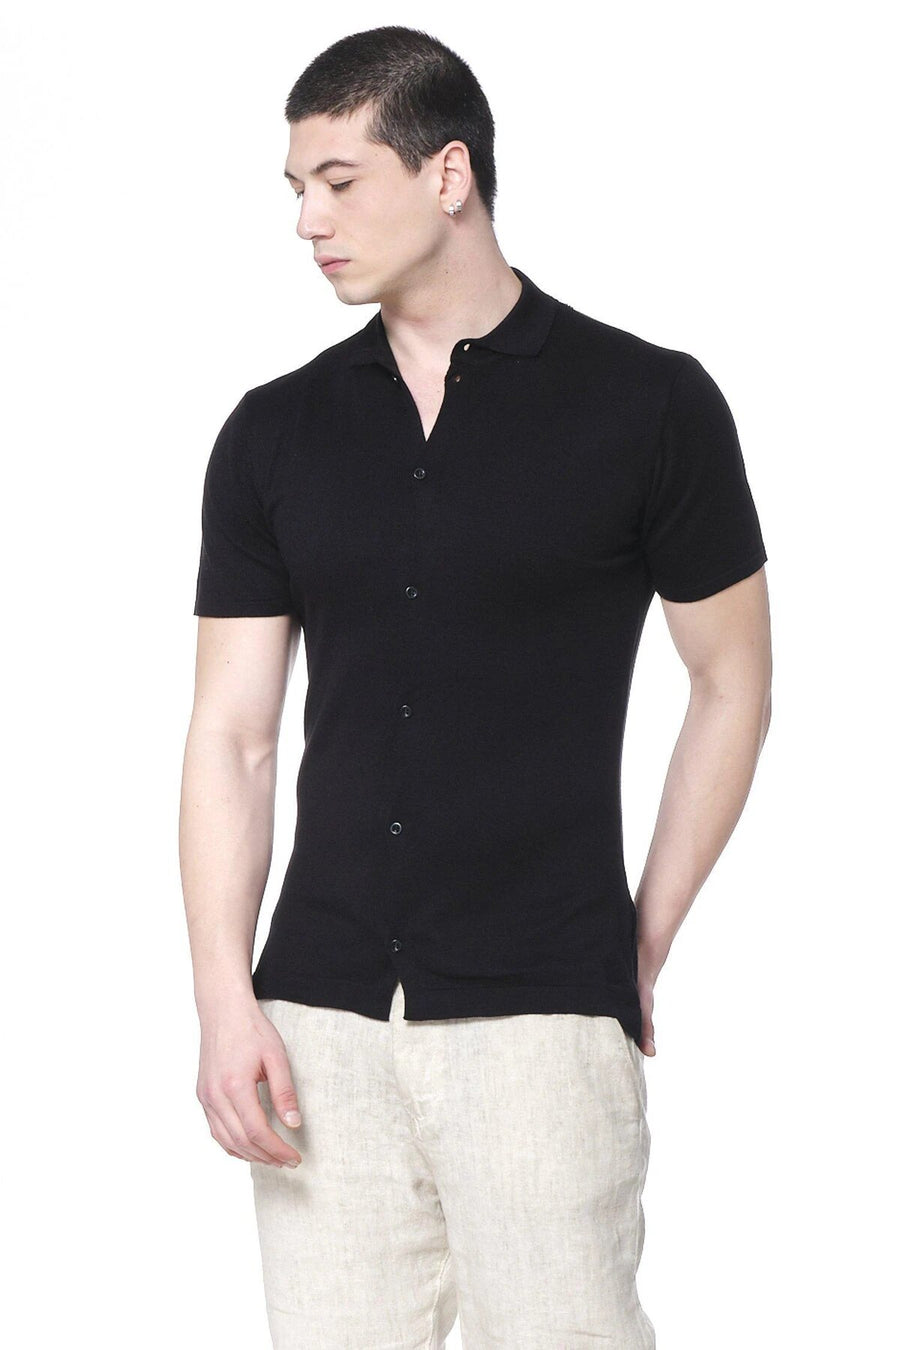 Wicked Chance Black Polo Shirt